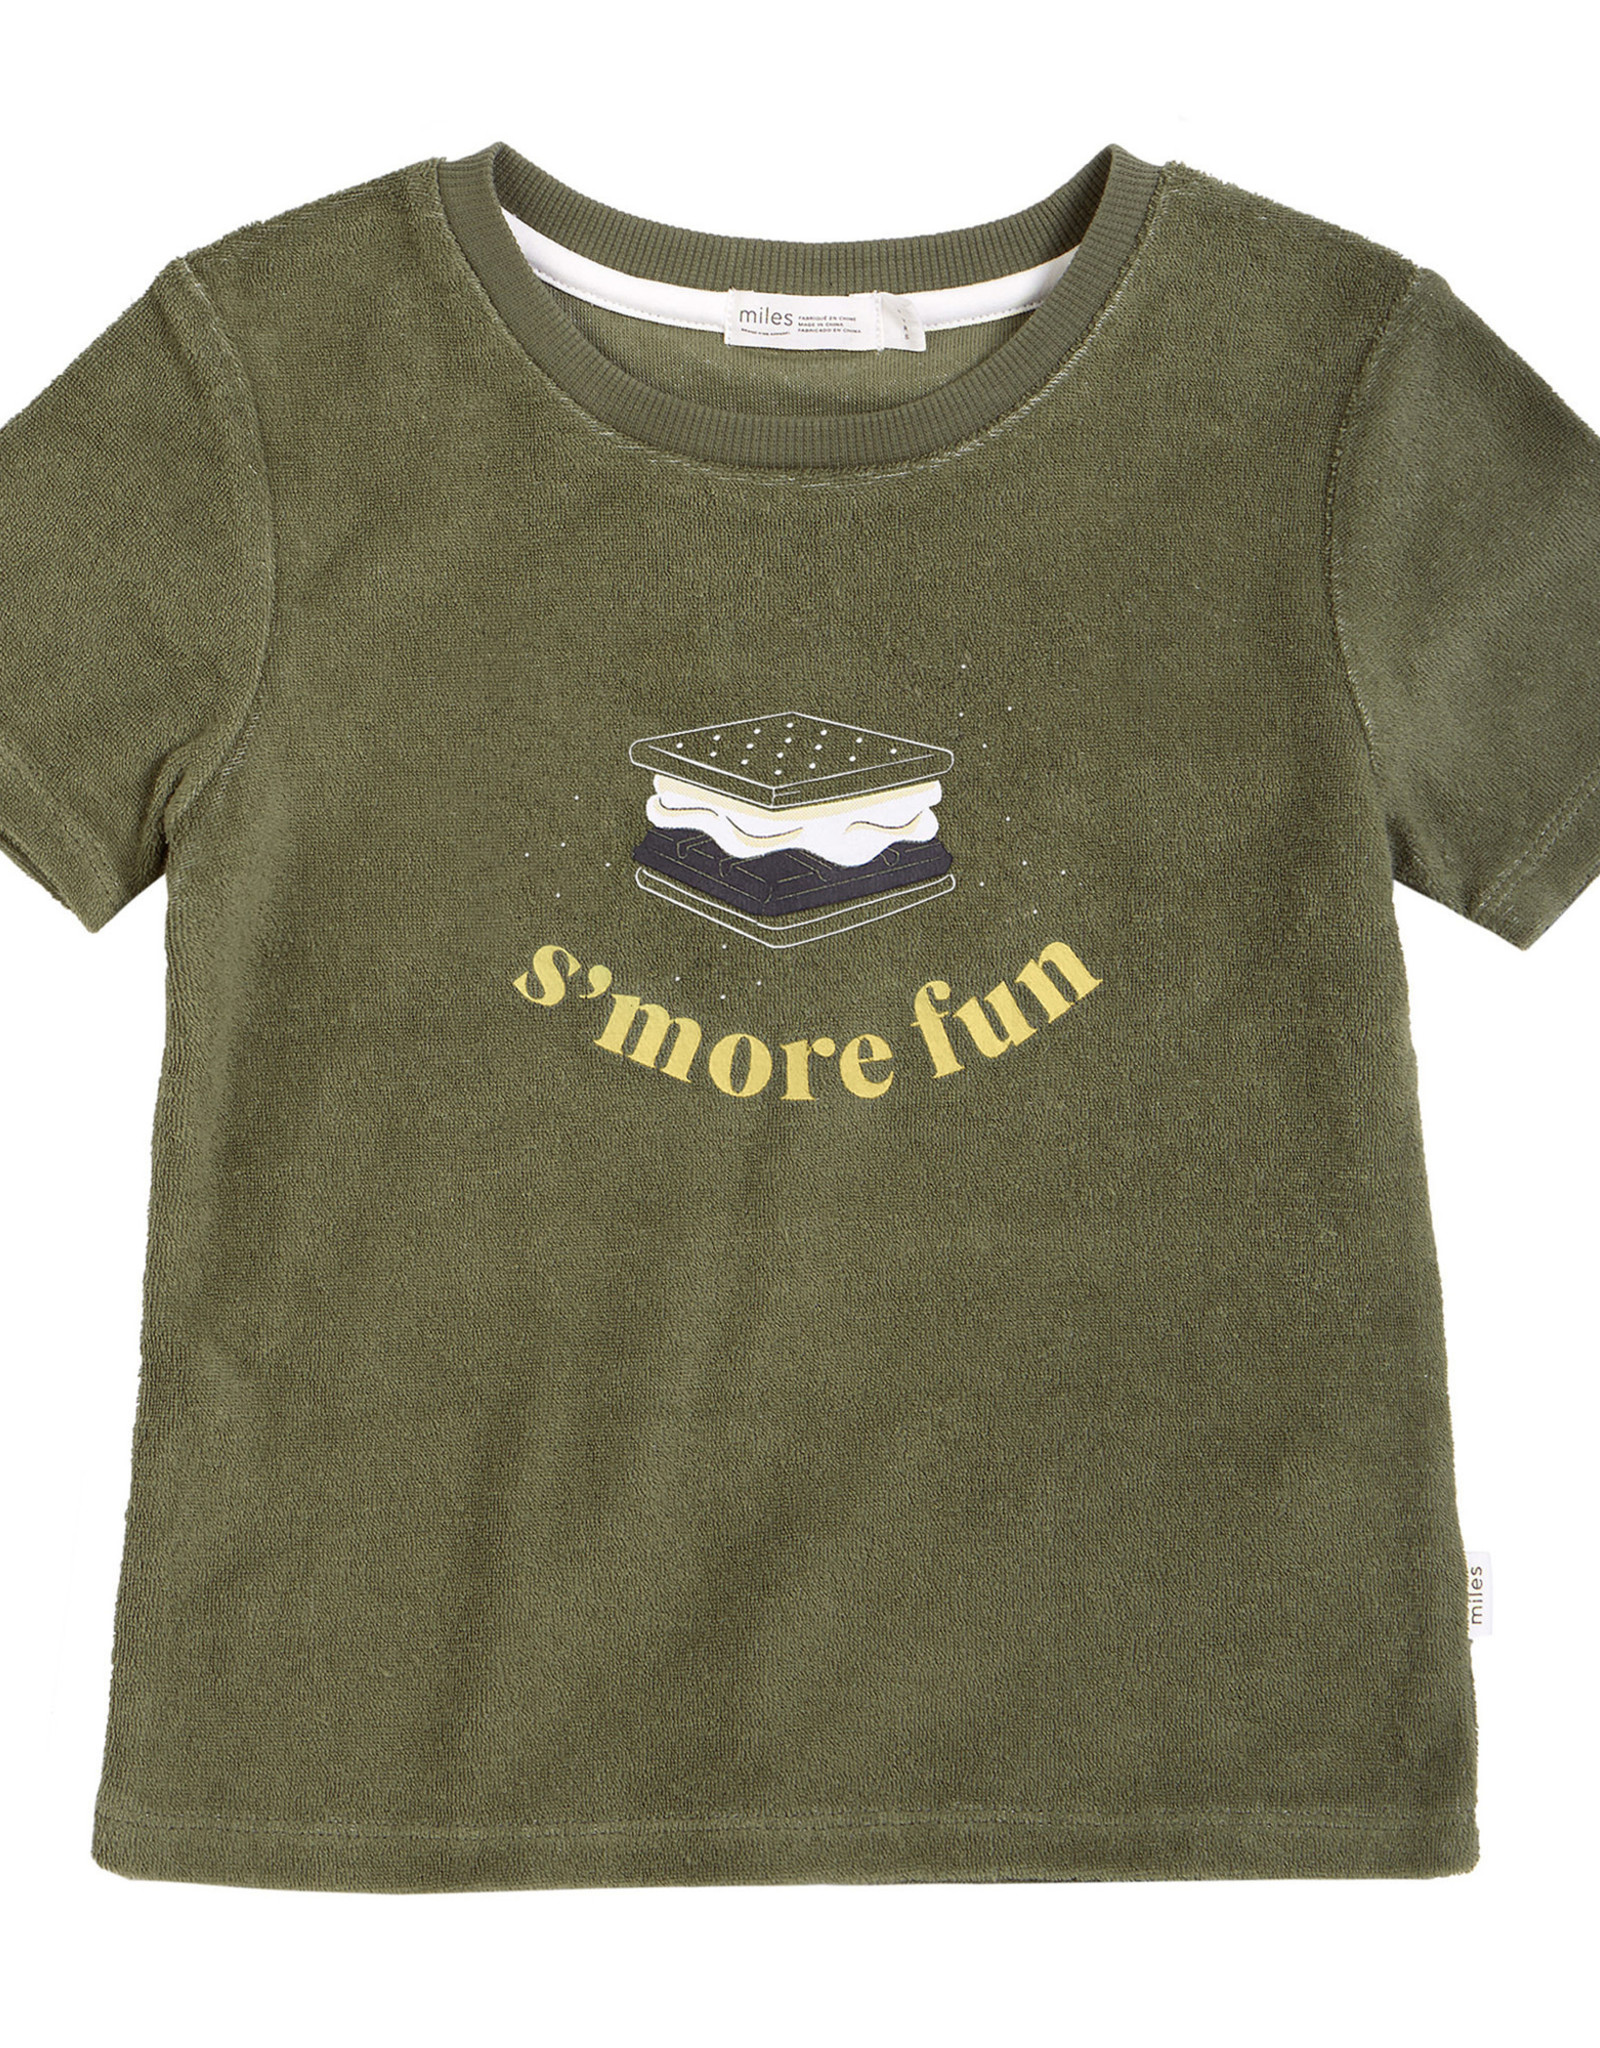 Miles SP21 B S'More Fun T-Shirt